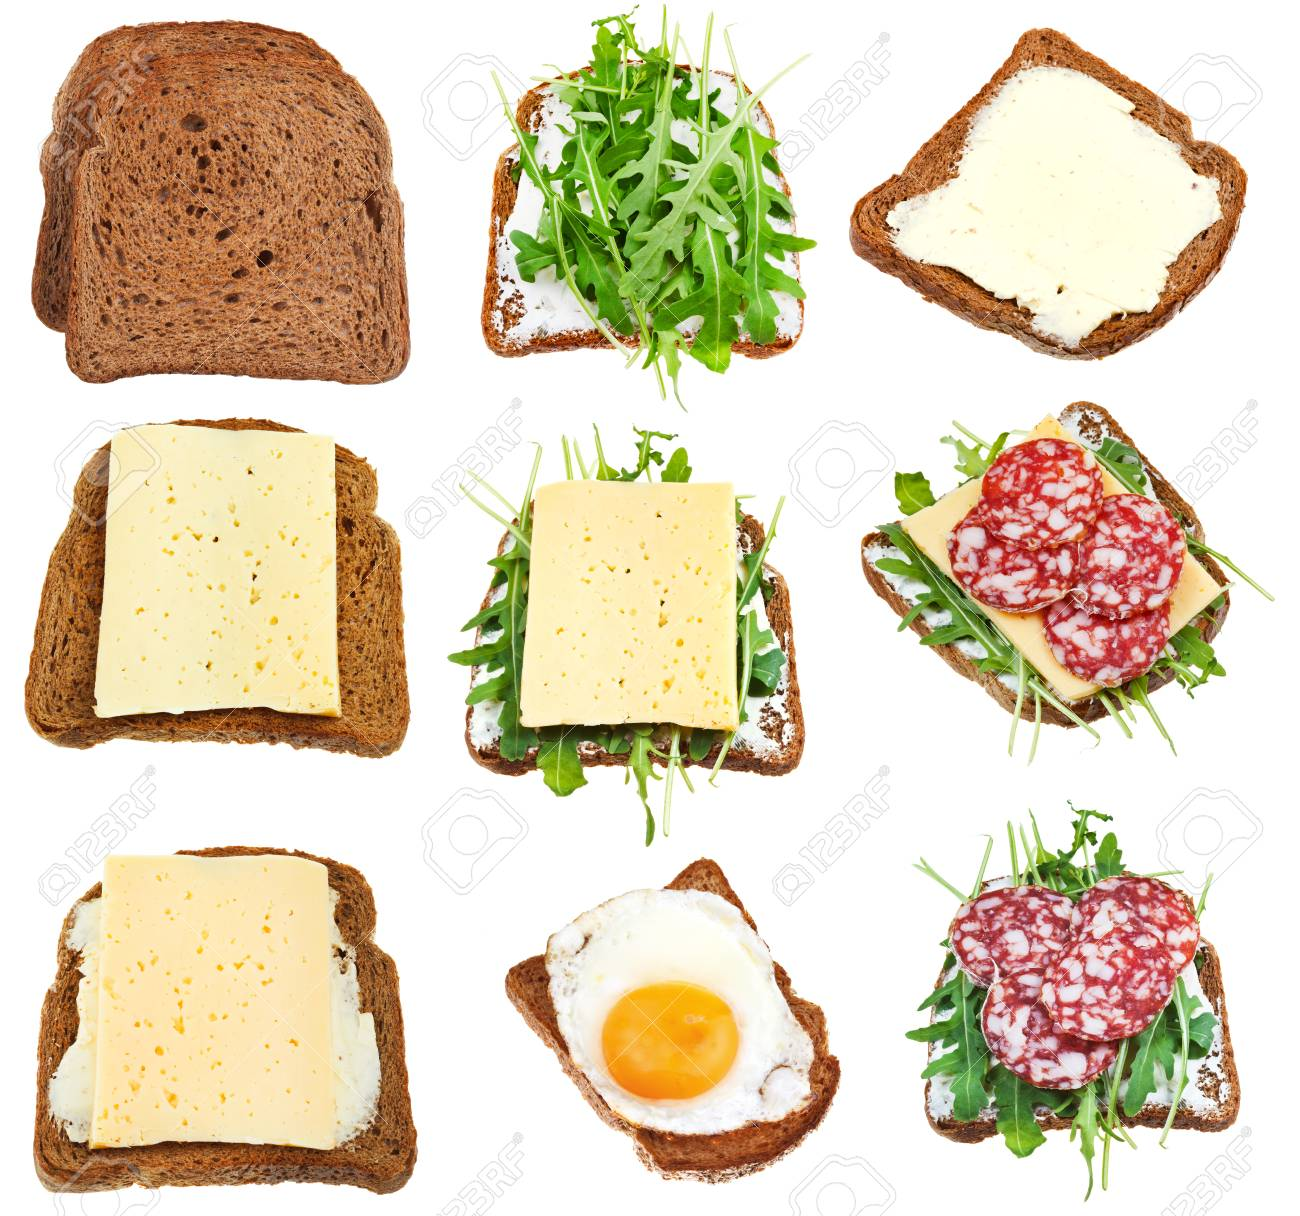 set of sandwiches from toasted brown bread isolated on white background - 37882100